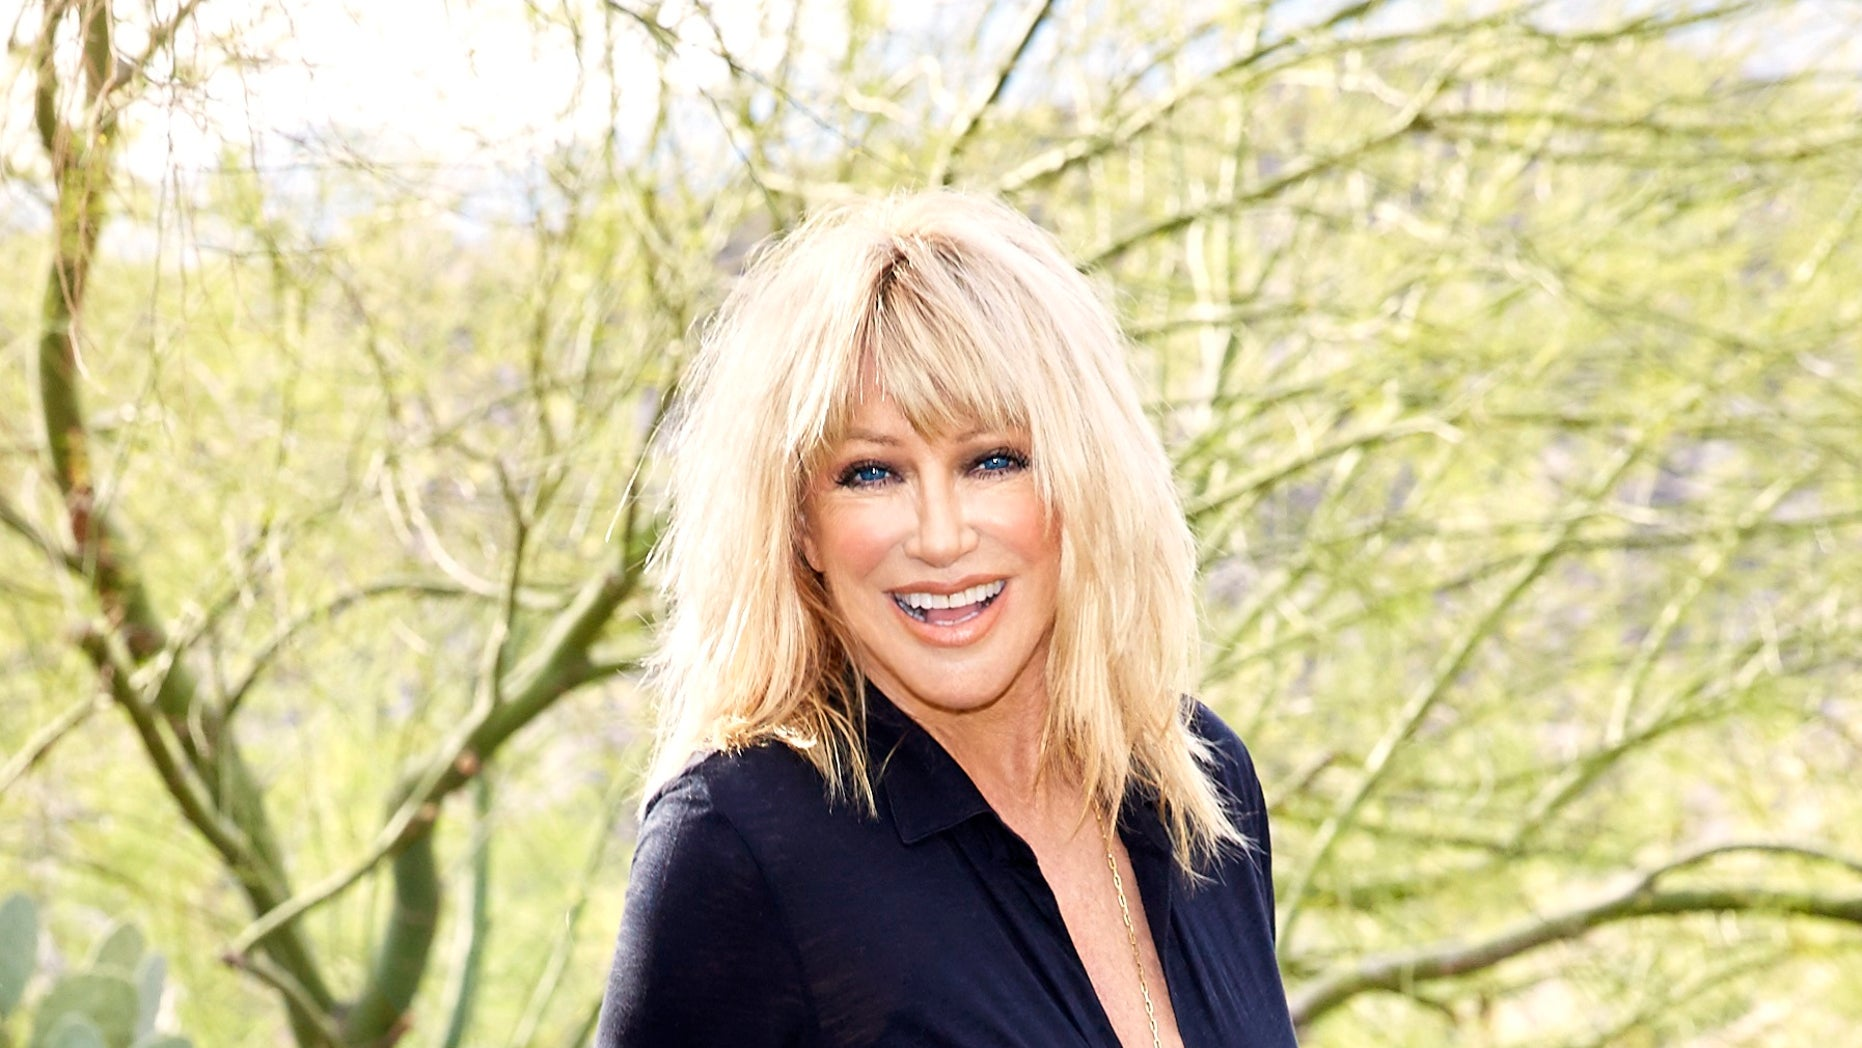 Author and actress Suzanne Somers